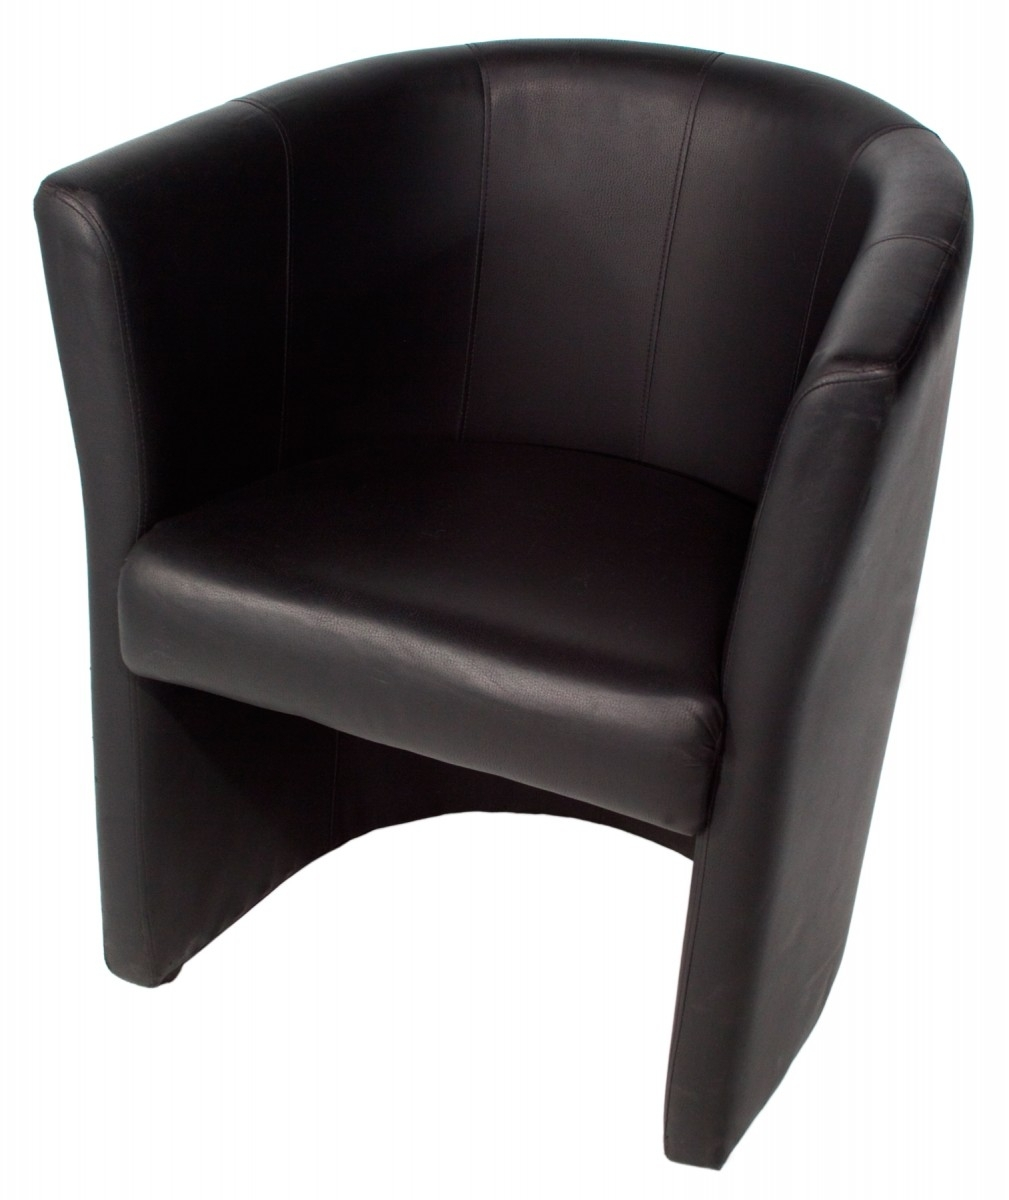 location de fauteuil club noir sur. Black Bedroom Furniture Sets. Home Design Ideas